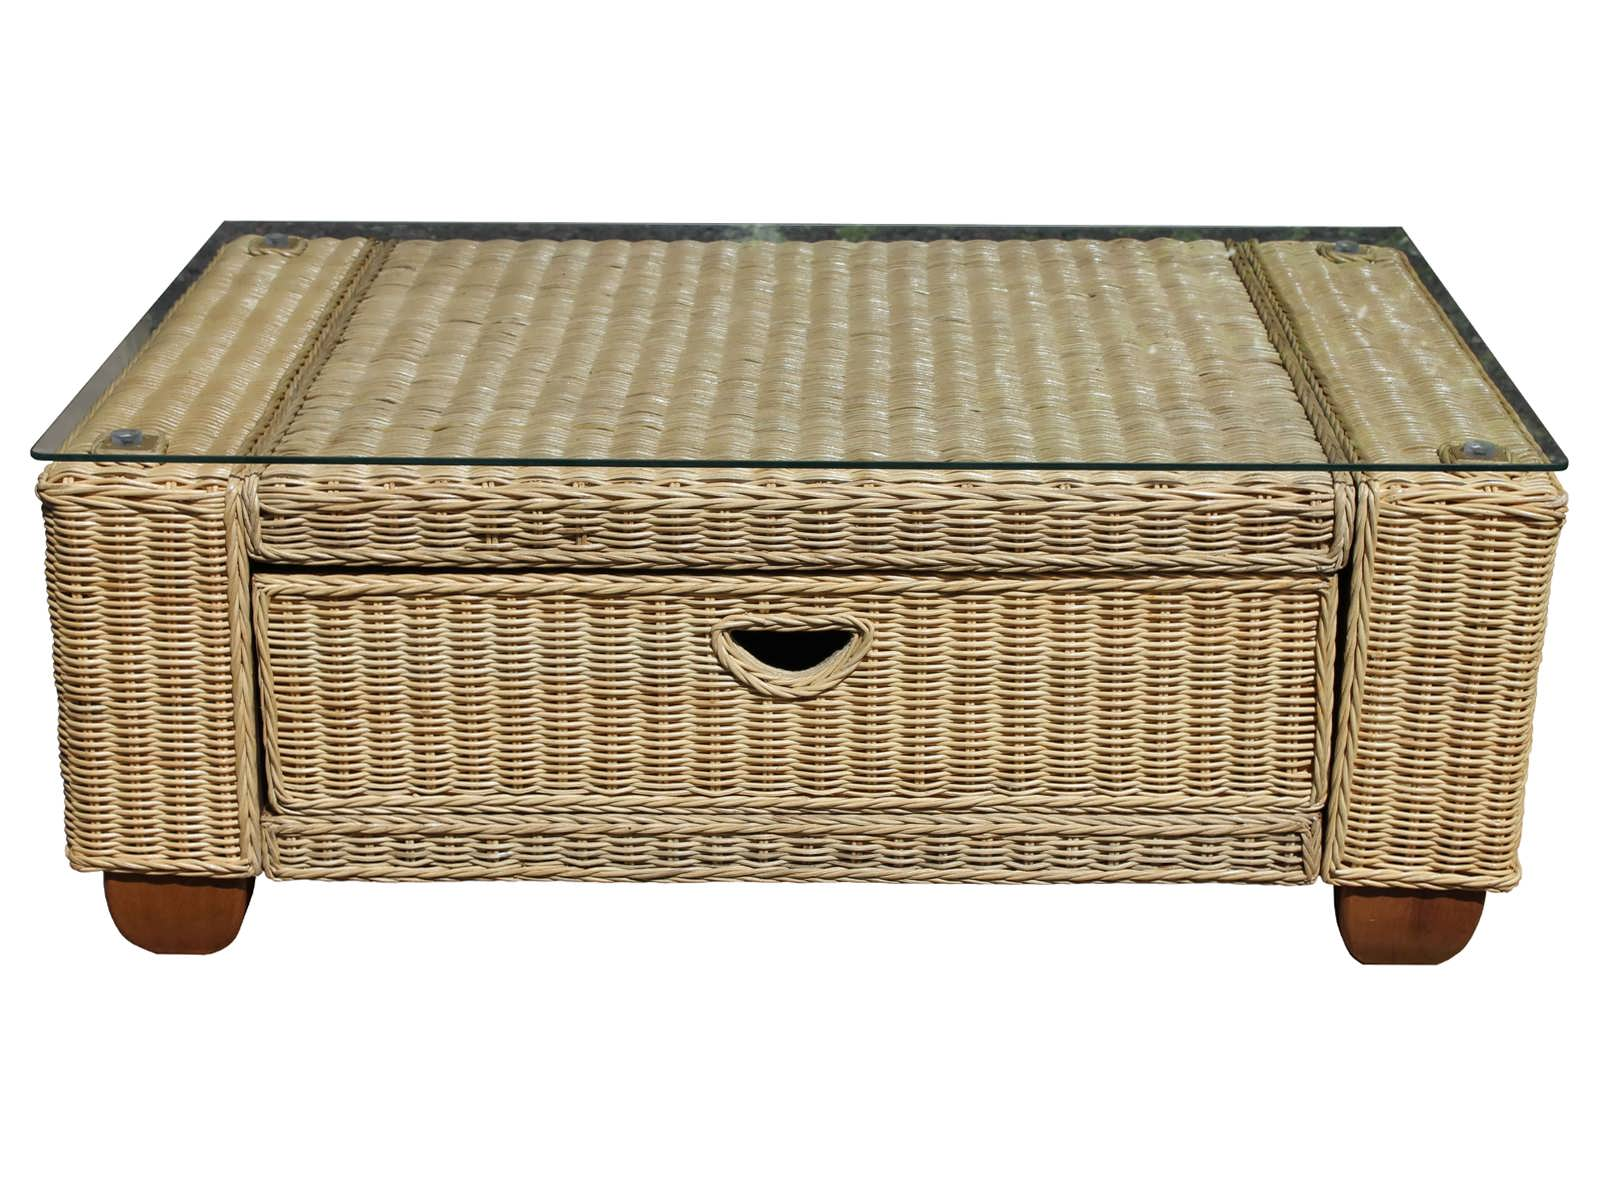 Kingston Wicker Rattan Coffee Table